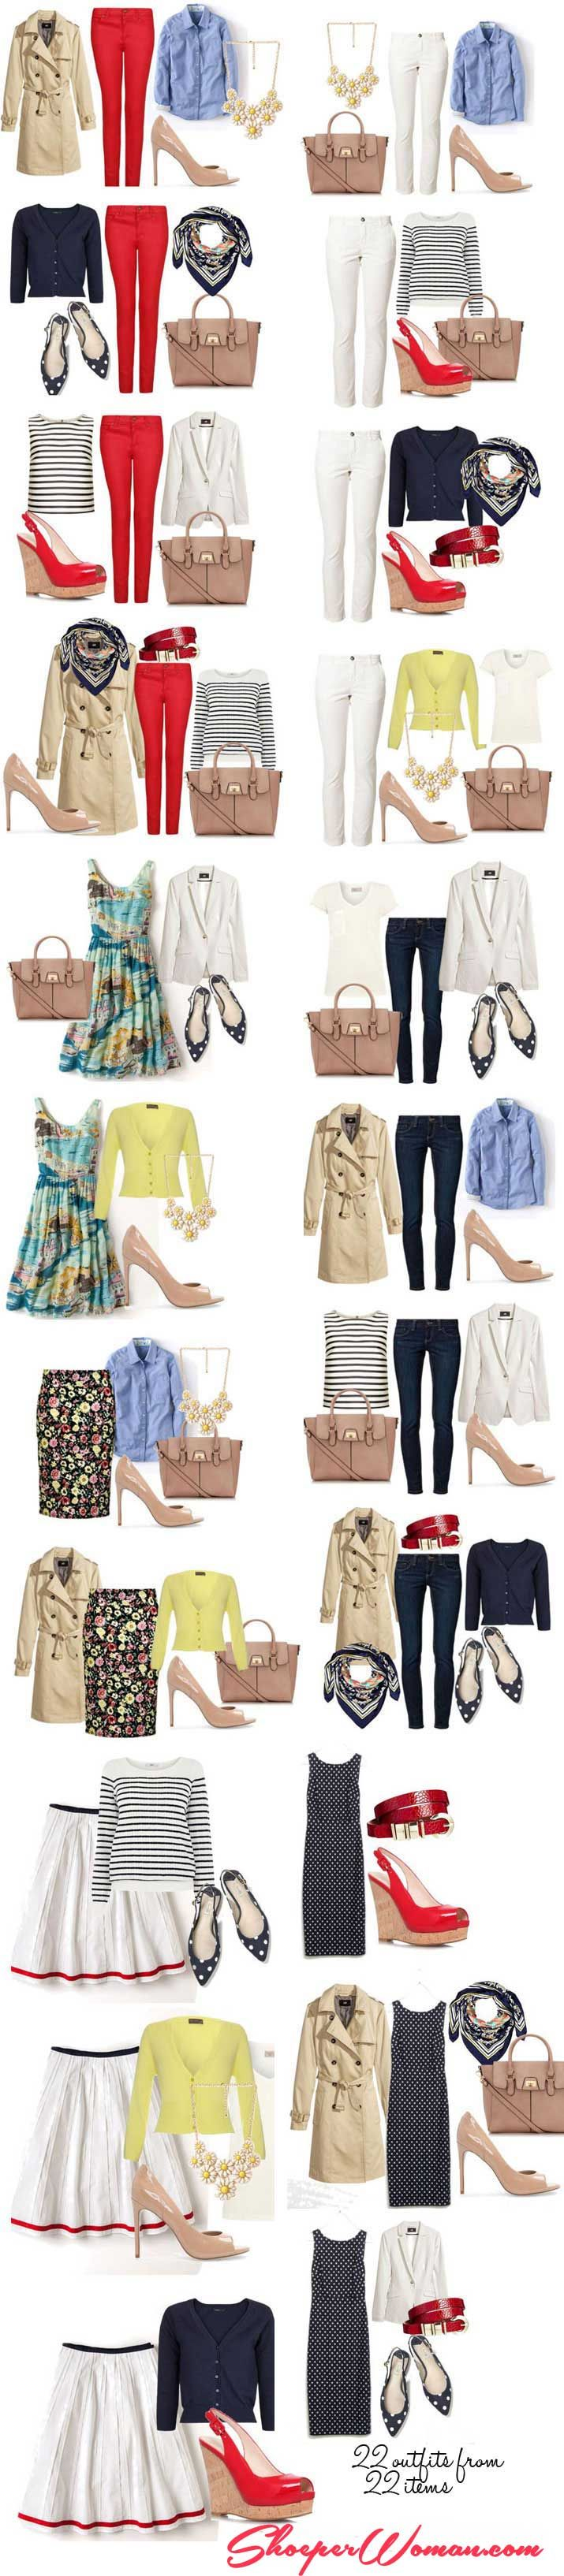 nautical-inspired capsule wardrobe: 22 items 3 pairs of shoes